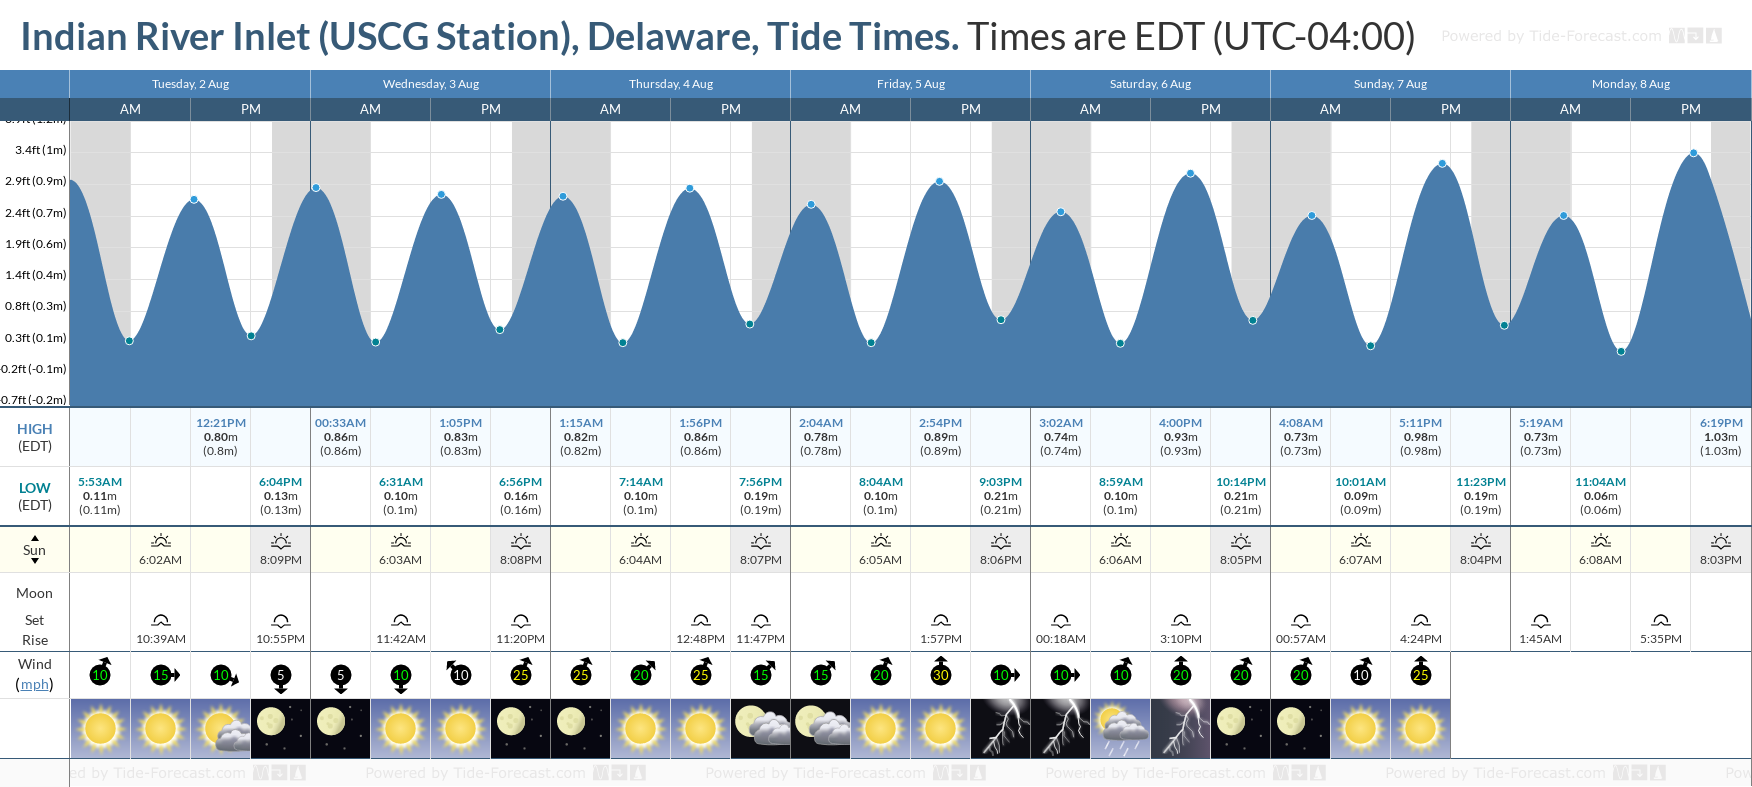 Indian River Inlet (USCG Station), Delaware Tide Chart including high and low tide tide times for the next 7 days